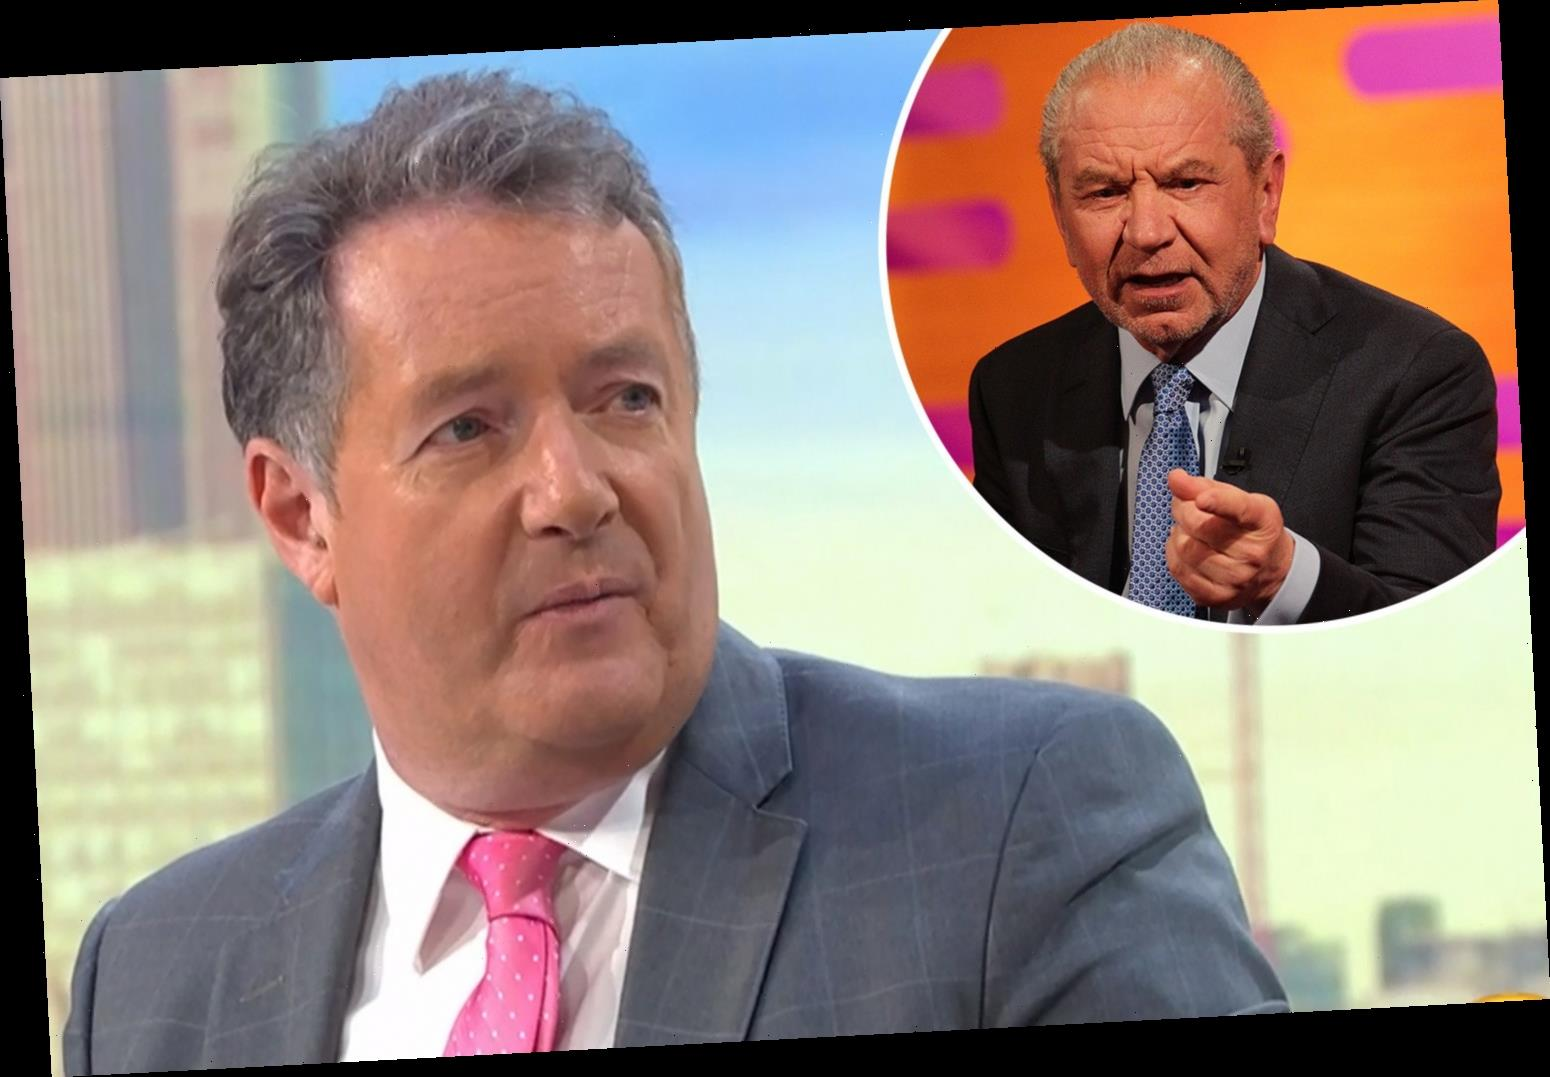 Piers Morgan blasts 'former friend' Lord Sugar again and accuses him of 'spouting nonsense' about coronavirus lockdown – The Sun